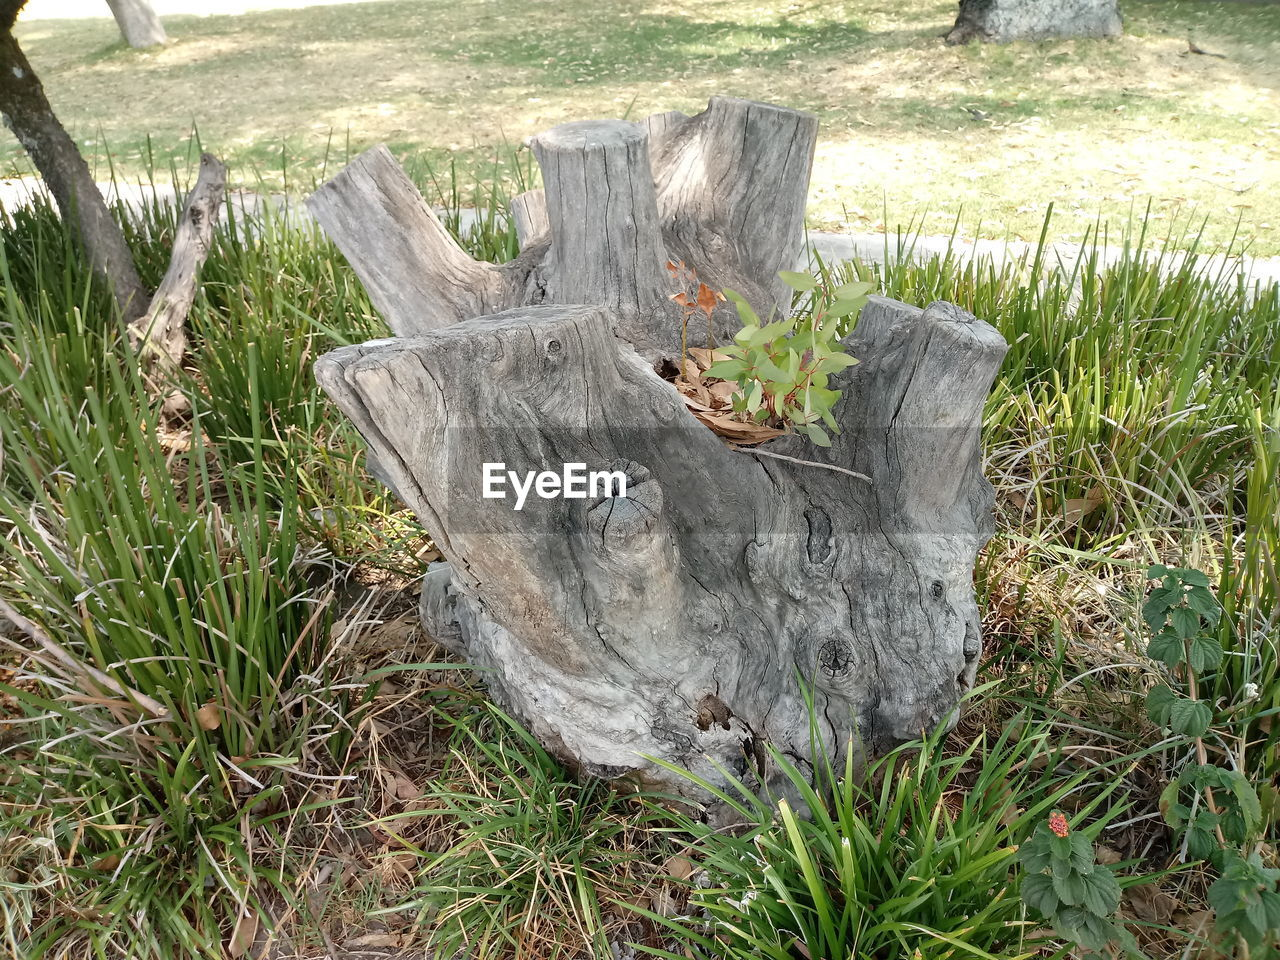 plant, land, grass, field, tree, nature, wood - material, day, no people, wood, log, growth, tree stump, green color, outdoors, bark, timber, forest, tranquility, tree trunk